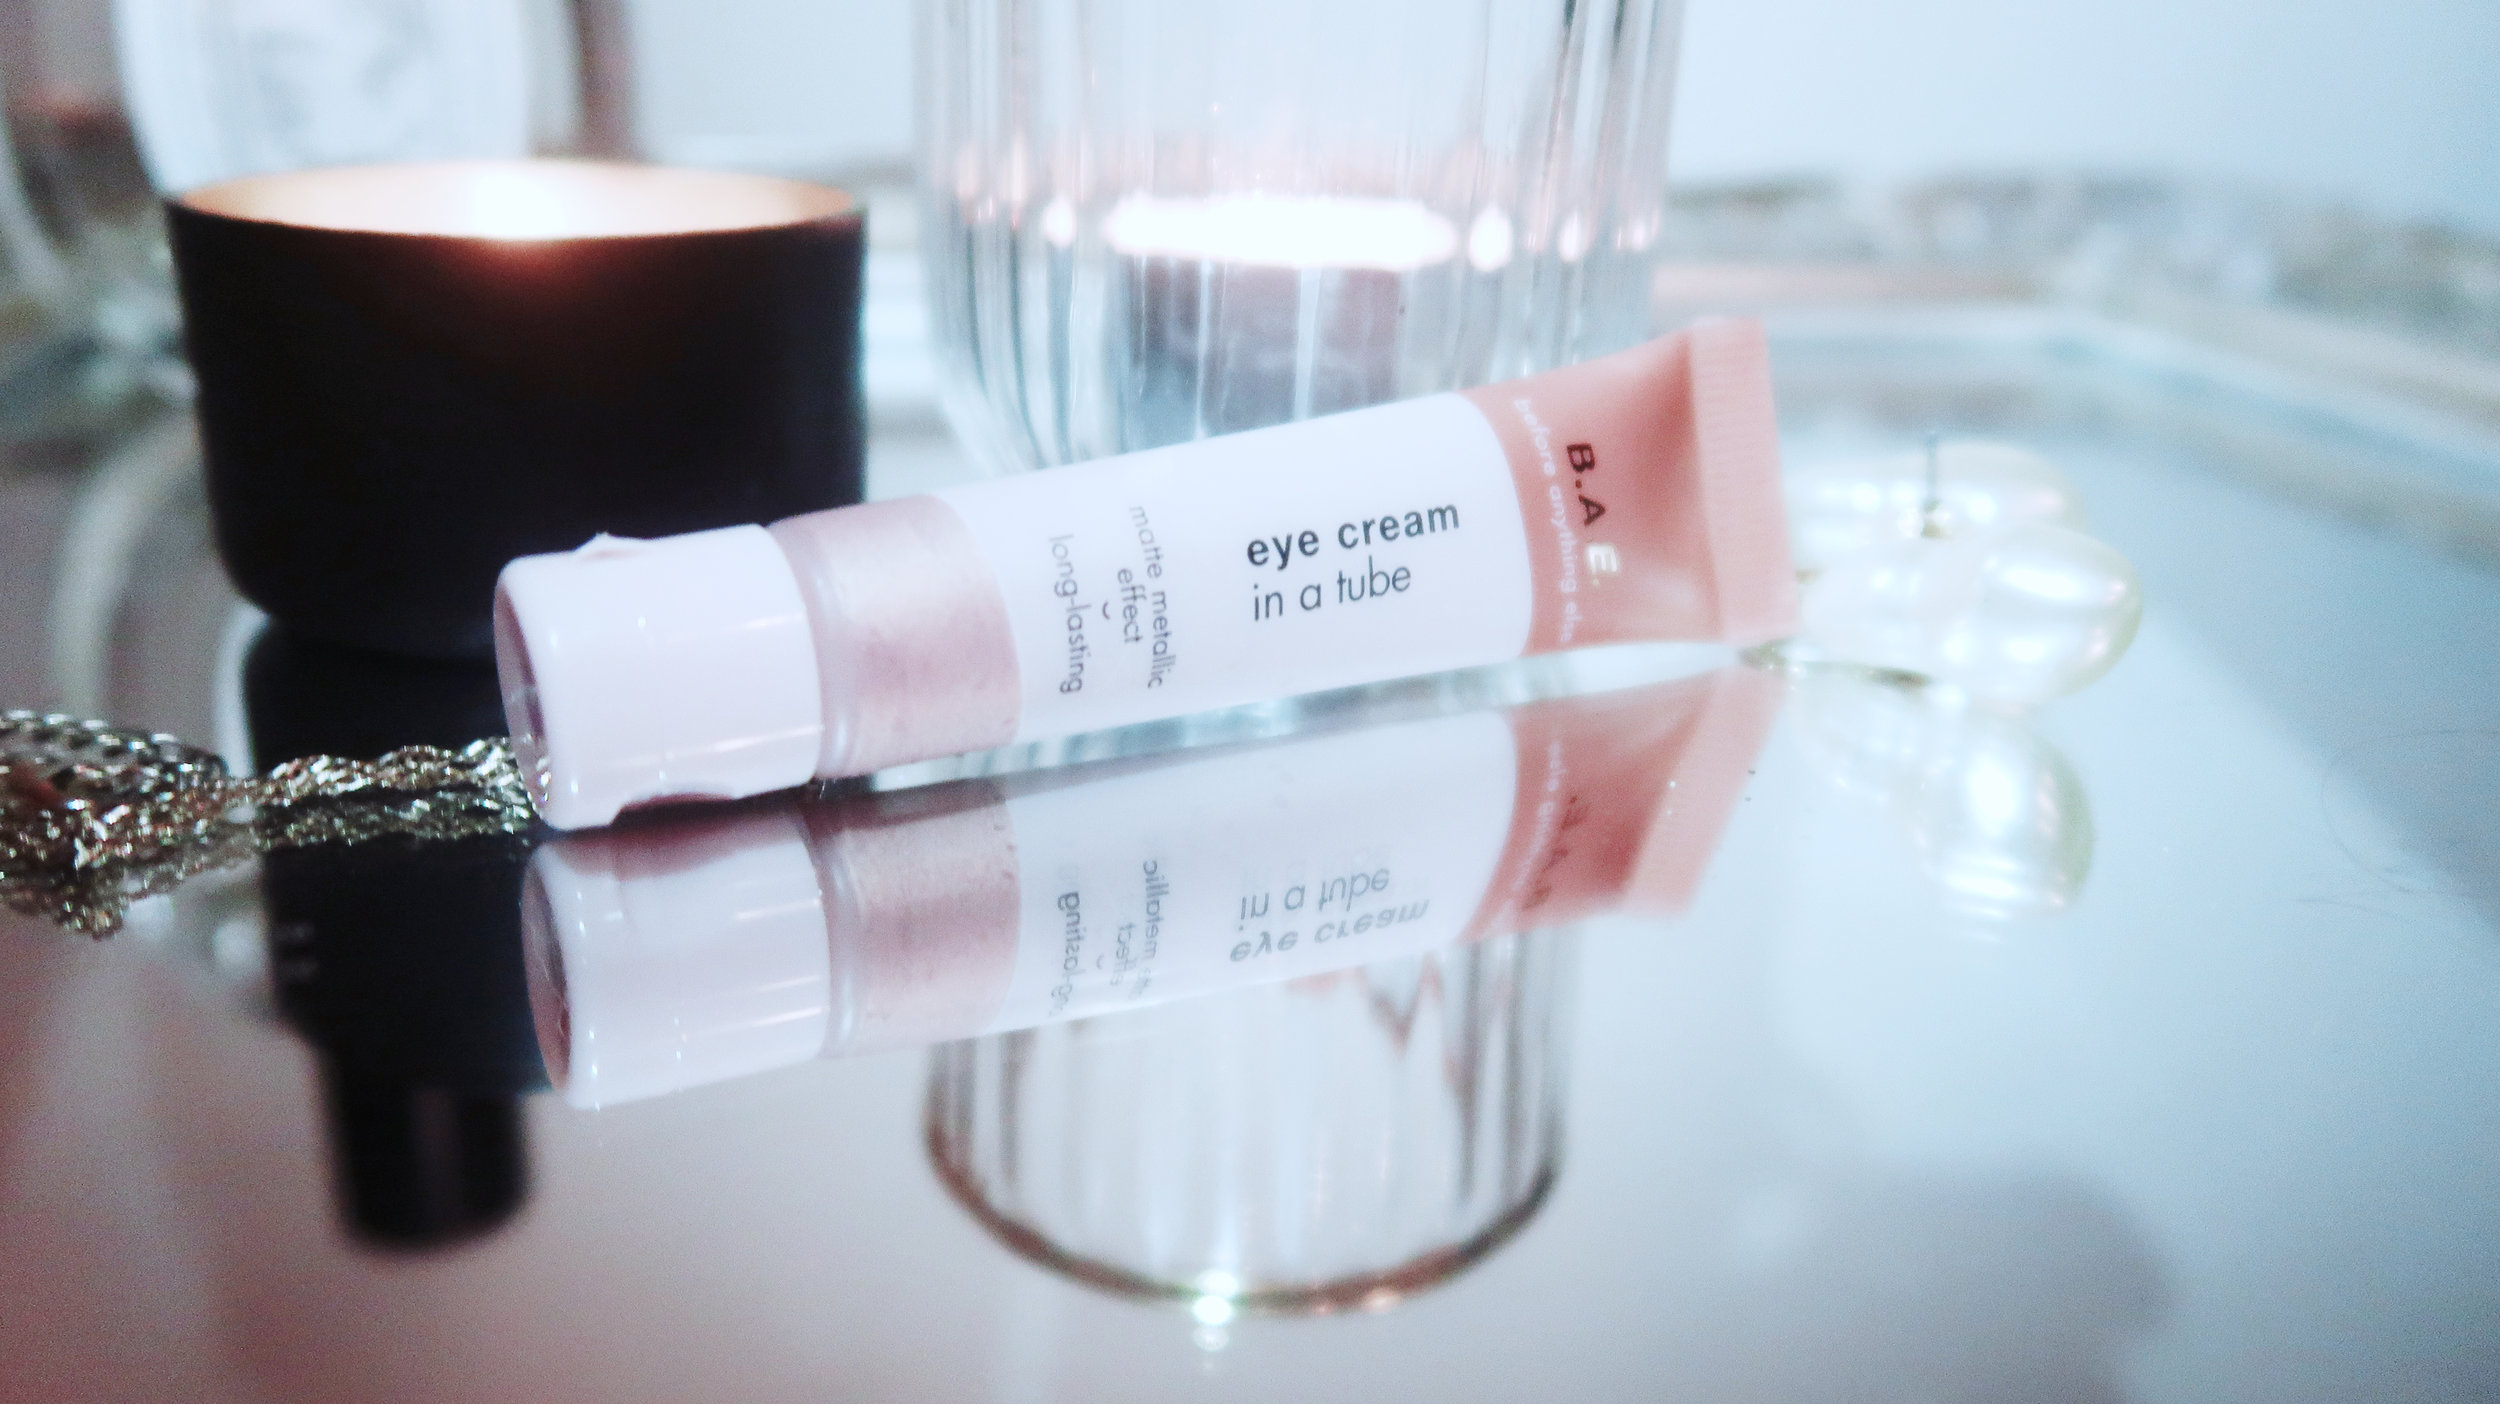 B.A.E. Eye cream in a tube - Product description: Matte metallic effect. Long lasting and dermatologically tested.